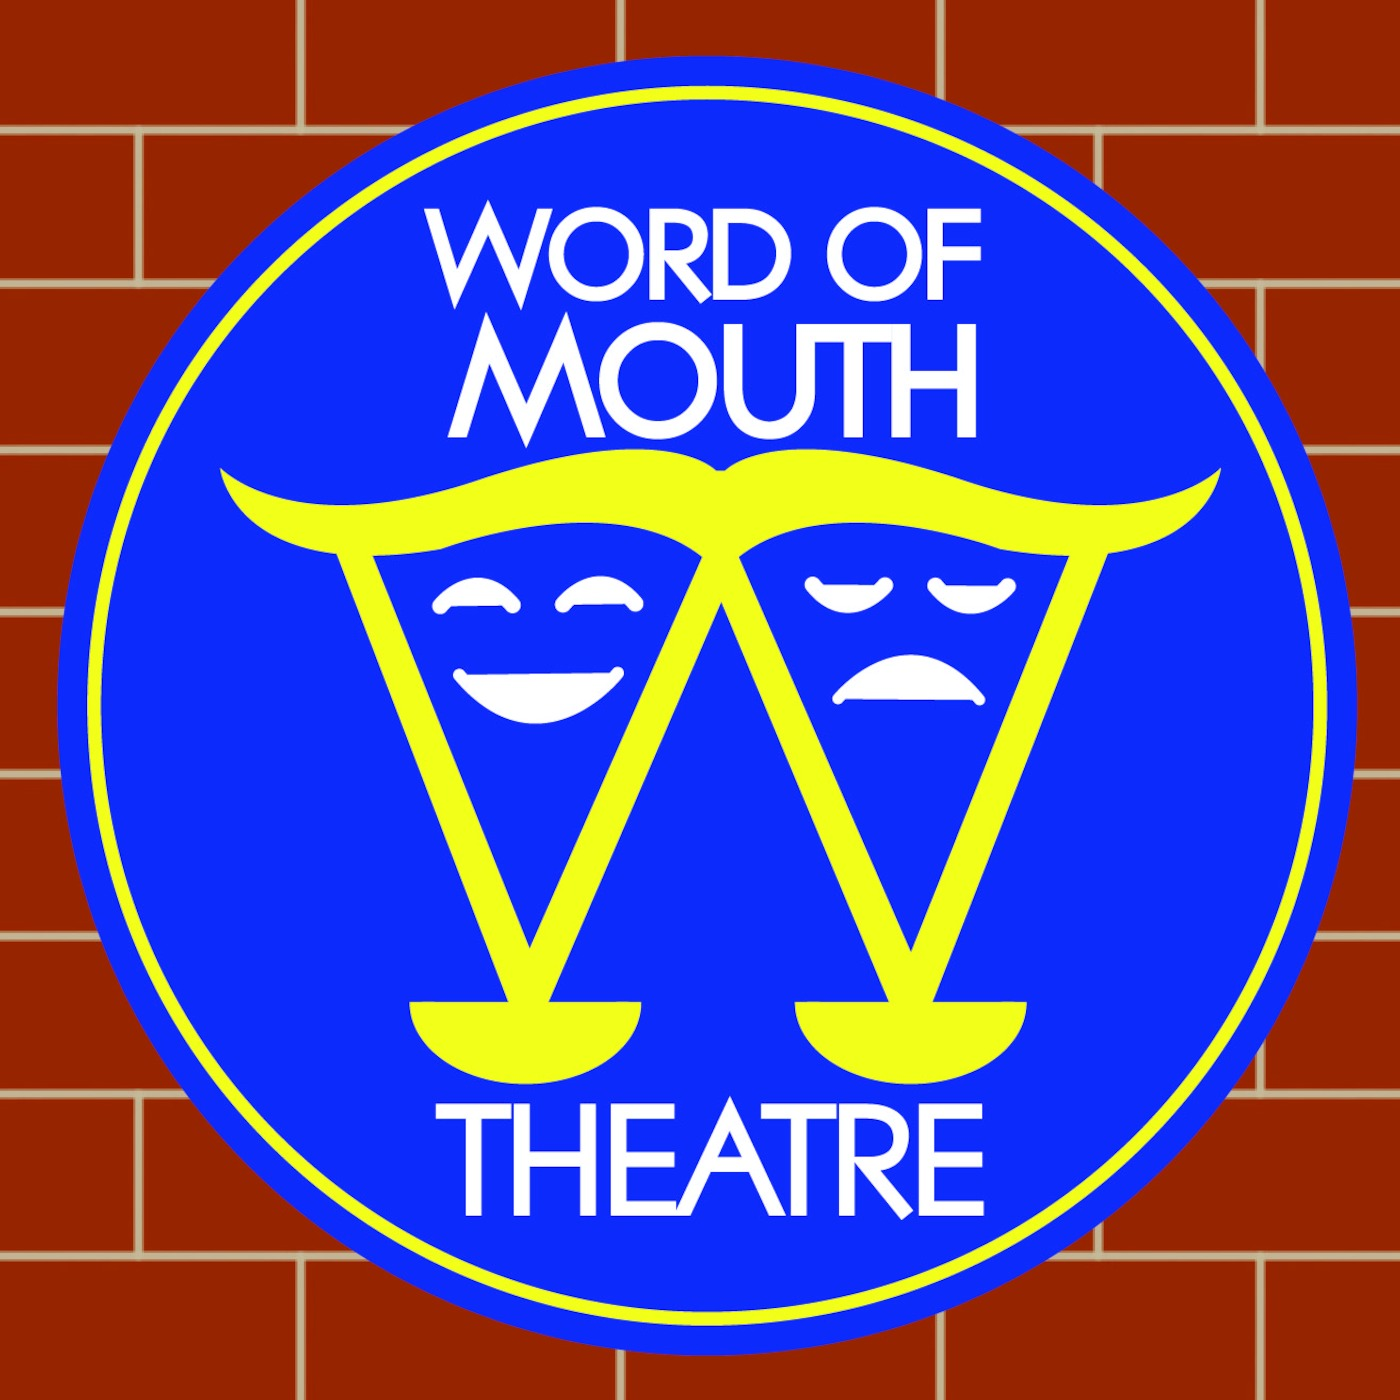 Word of Mouth Theatre: Mar '14